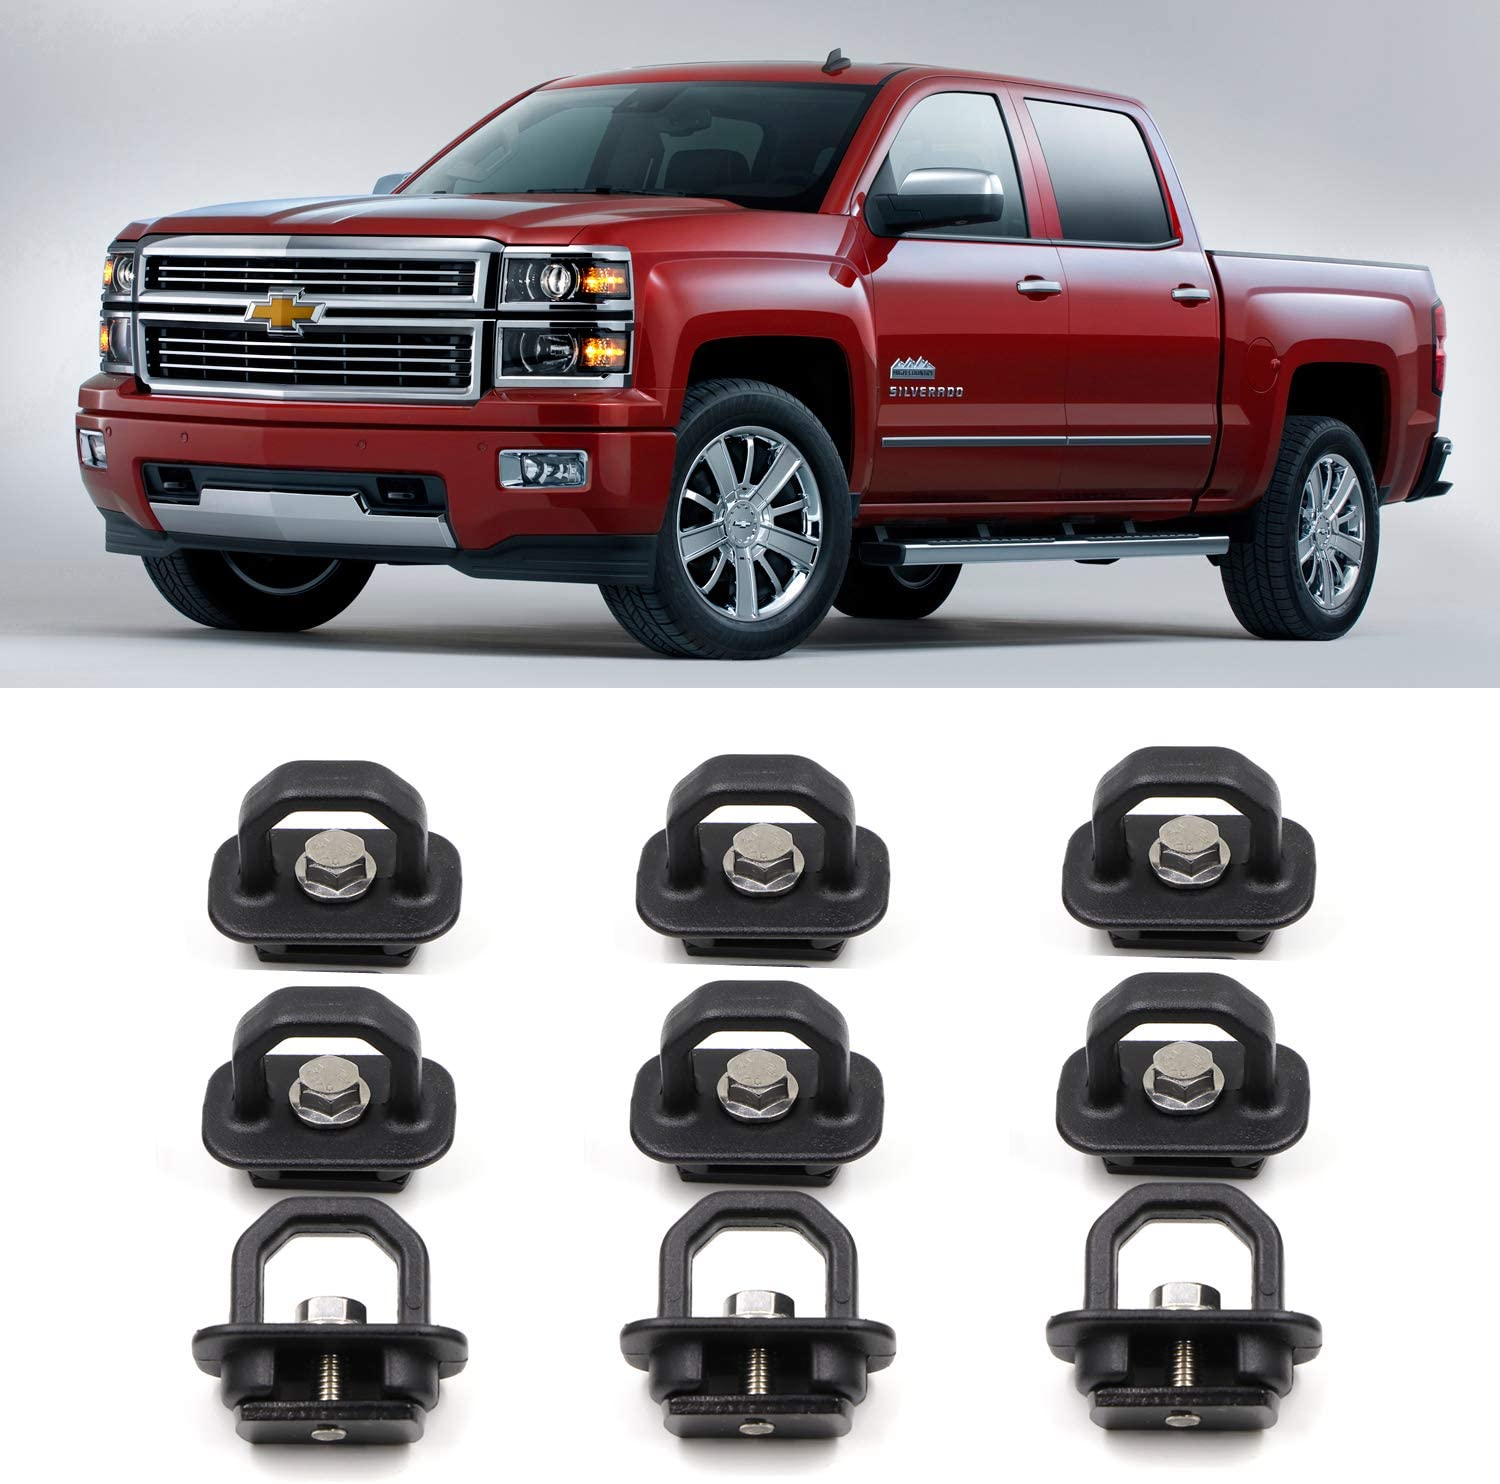 4 Pcs Hook Rings for 2007-2018 Chevrolet Silverdo//2015-2018 Colorado 2007-2018 GMC Sierra//2015-2018 Canyon AEagle 1000 Pound Truck Bed Side Wall Tie Down Anchors